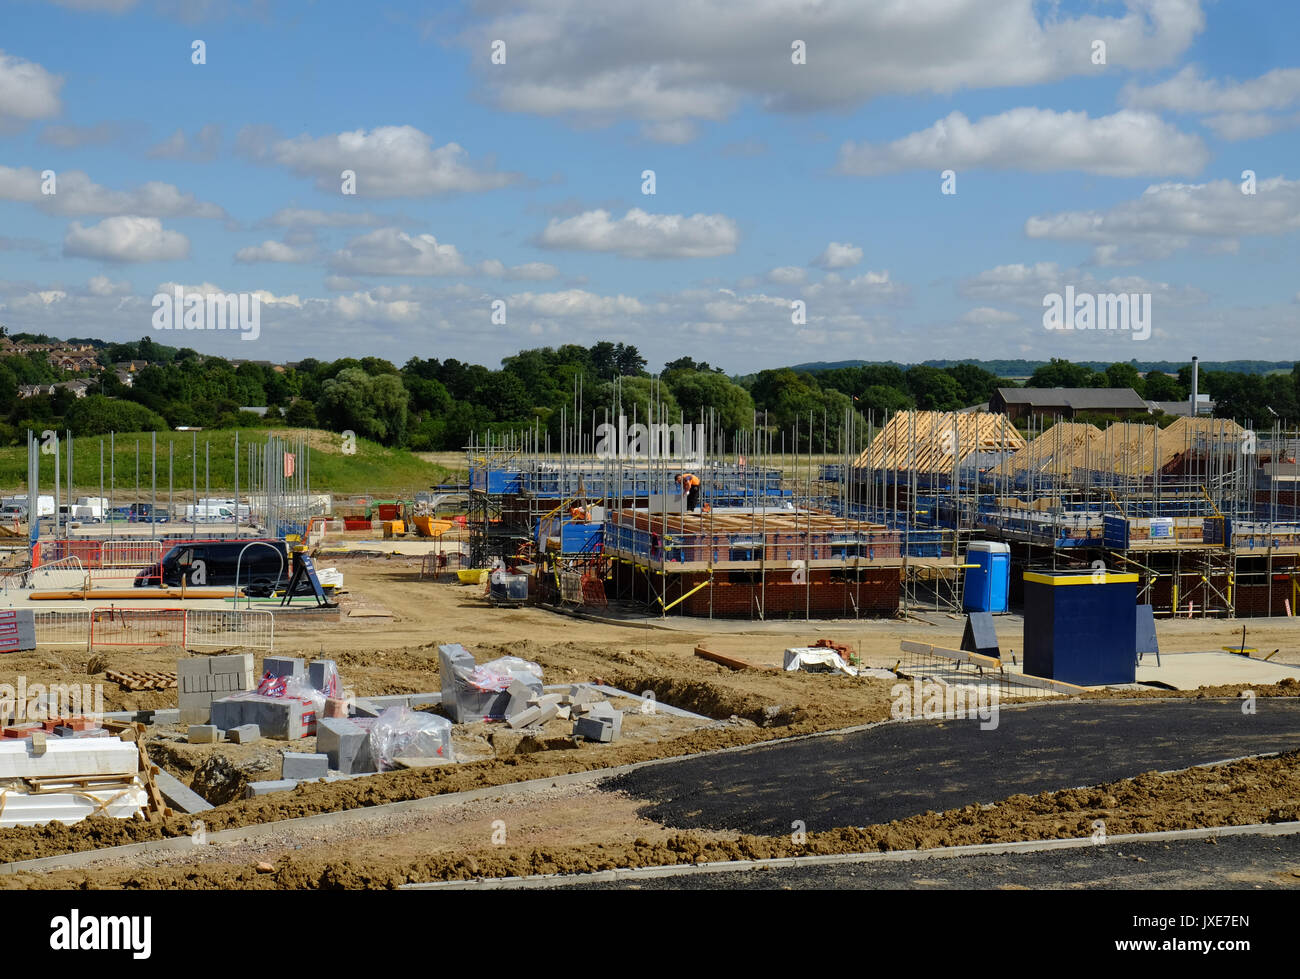 Building of new housing estate, Grantham, Lincs, UK - Stock Image